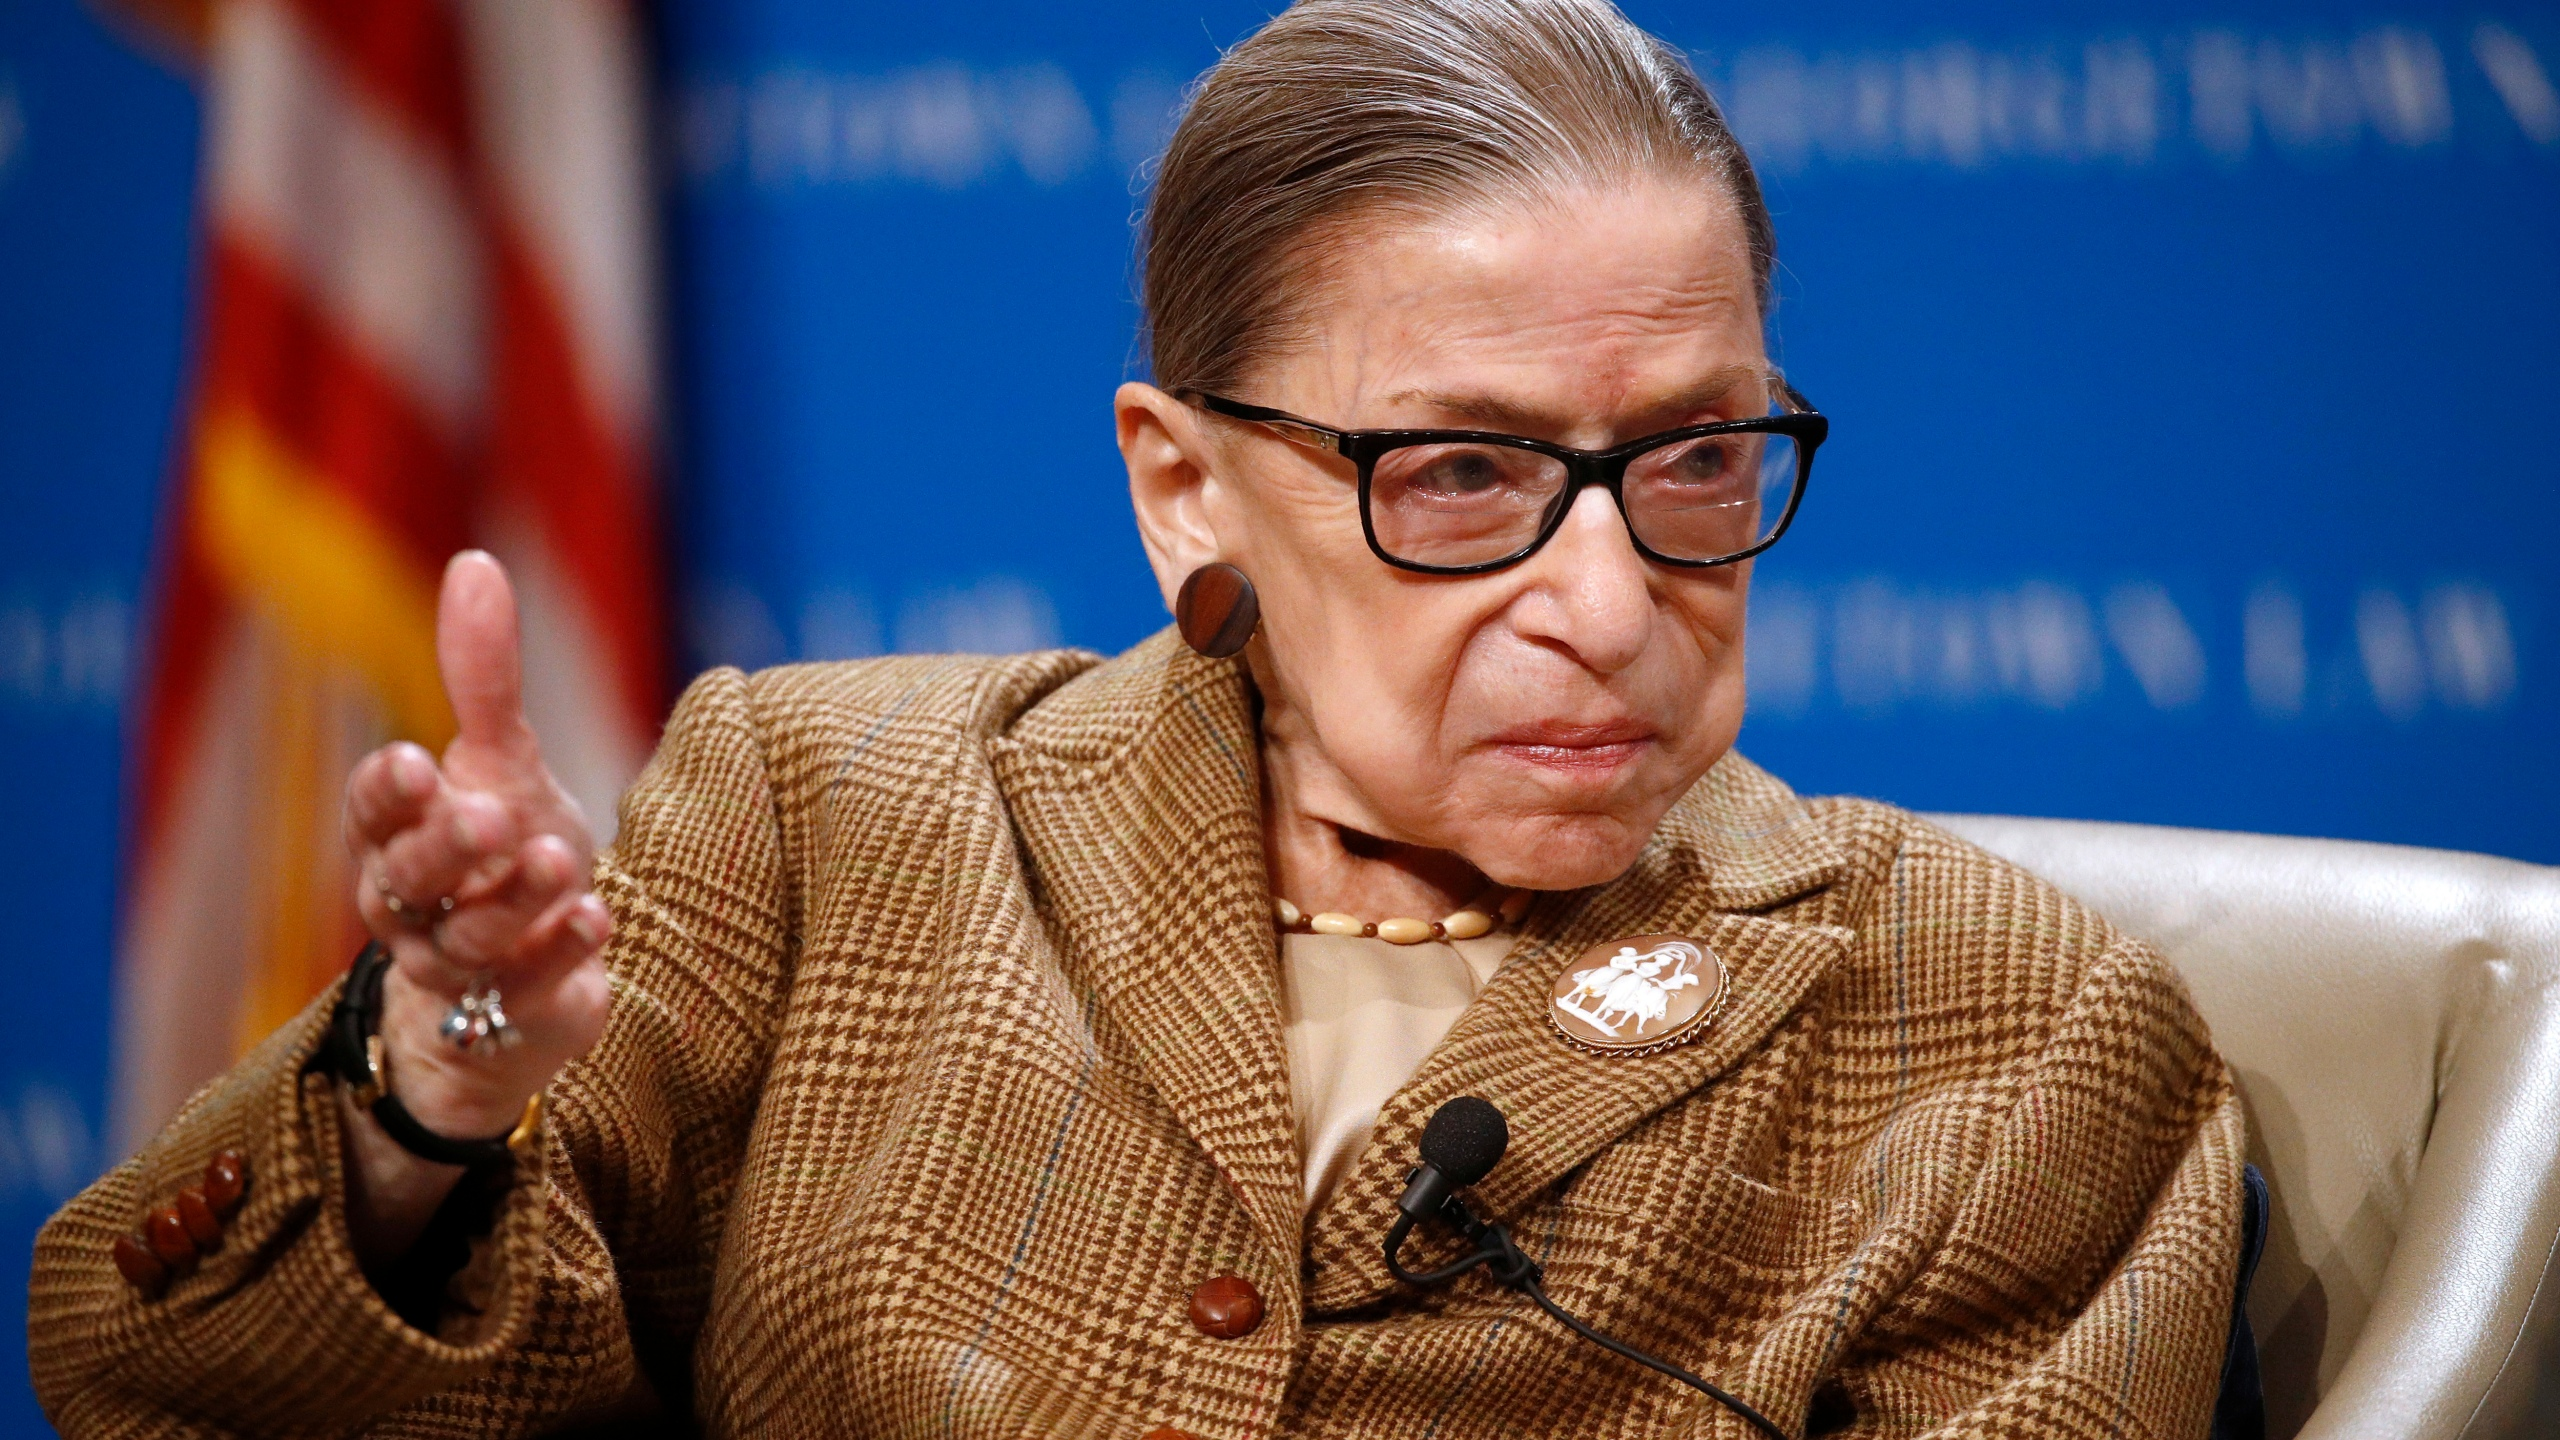 In this Feb. 10, 2020, file photo, U.S. Supreme Court Associate Justice Ruth Bader Ginsburg speaks during a discussion on the 100th anniversary of the ratification of the 19th Amendment at Georgetown University Law Center in Washington. The Supreme Court says Ginsburg has been hospitalized with an infection caused by a gallstone. The 87-year-old justice underwent non-surgical treatment Tuesday, May 5, for what the court described as acute cholecystitis, a benign gall bladder condition, at Johns Hopkins Hospital in Baltimore. (AP Photo/Patrick Semansky, File)